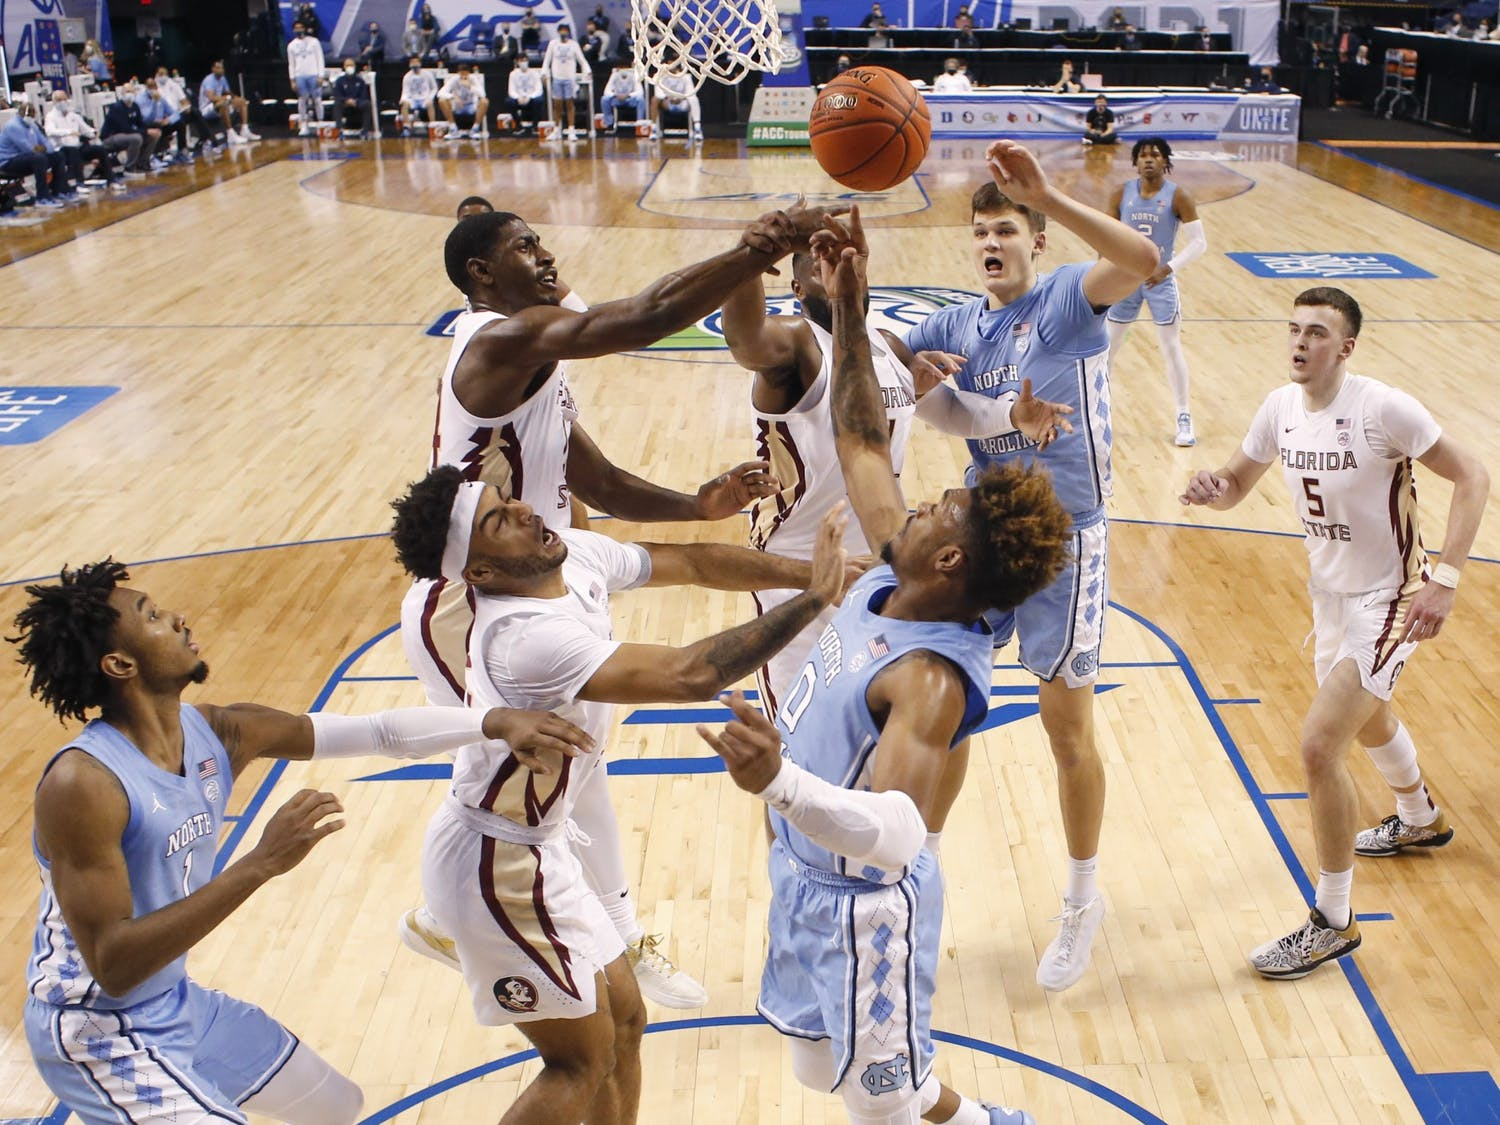 Florida State's Anthony Polite (2), Florida State's Sardaar Calhoun (24) and Florida State's RaiQuan Gray (1) go after the rebound with North Carolina's Anthony Harris (0) and North Carolina's Walker Kessler (13) during the first half of UNC's game against Florida State in the seminfinals of the ACC Men's Basketball Tournament in Greensboro, N.C., Friday, March 12, 2021. Photo courtesy of Ethan Hyman.